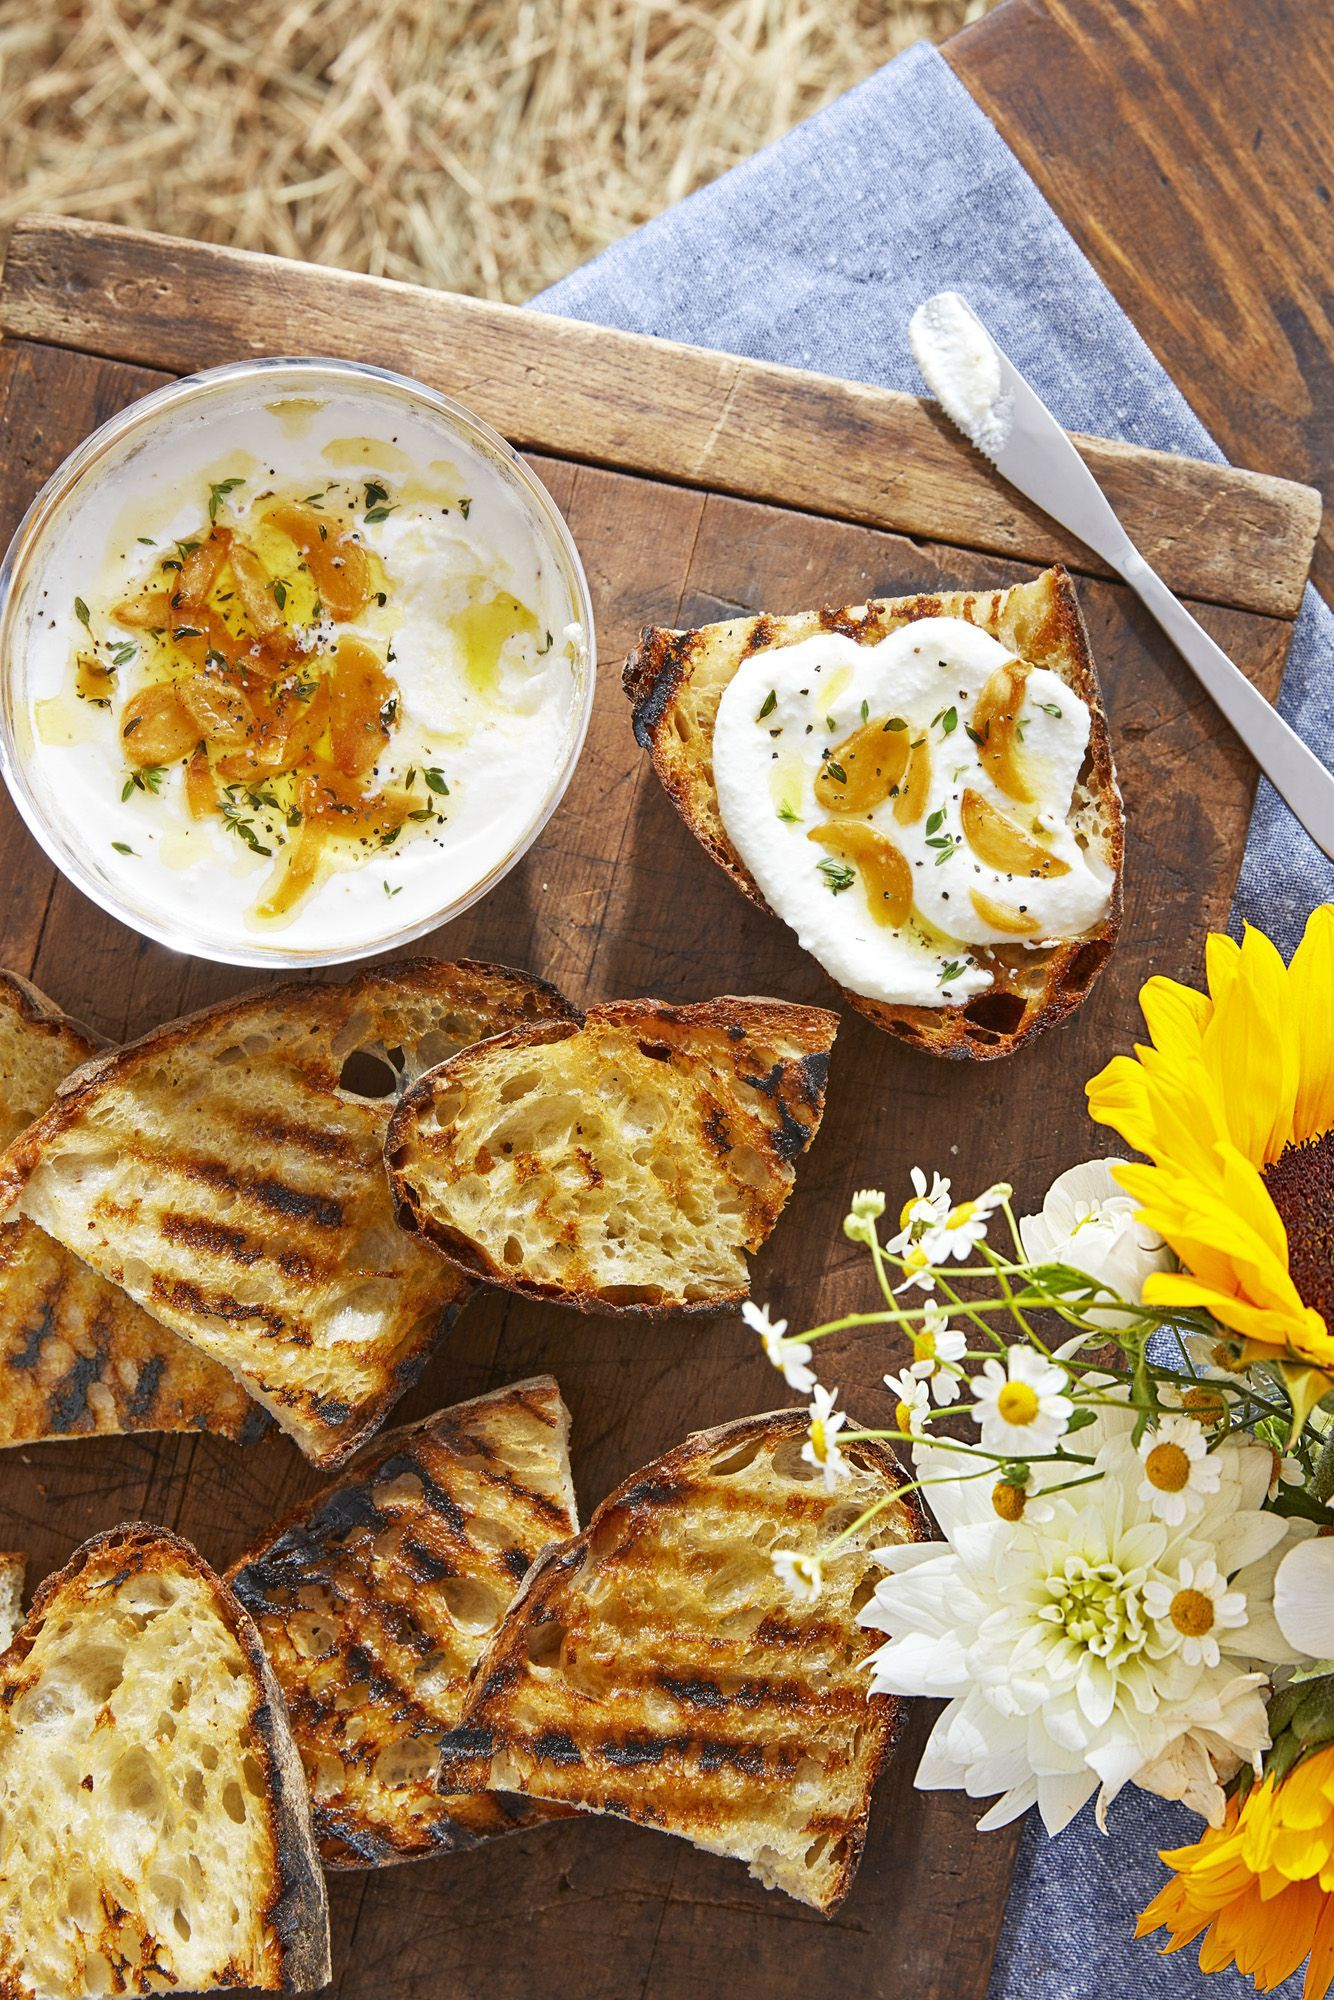 Whipped Ricotta and Grilled Bread Recipe in 2020